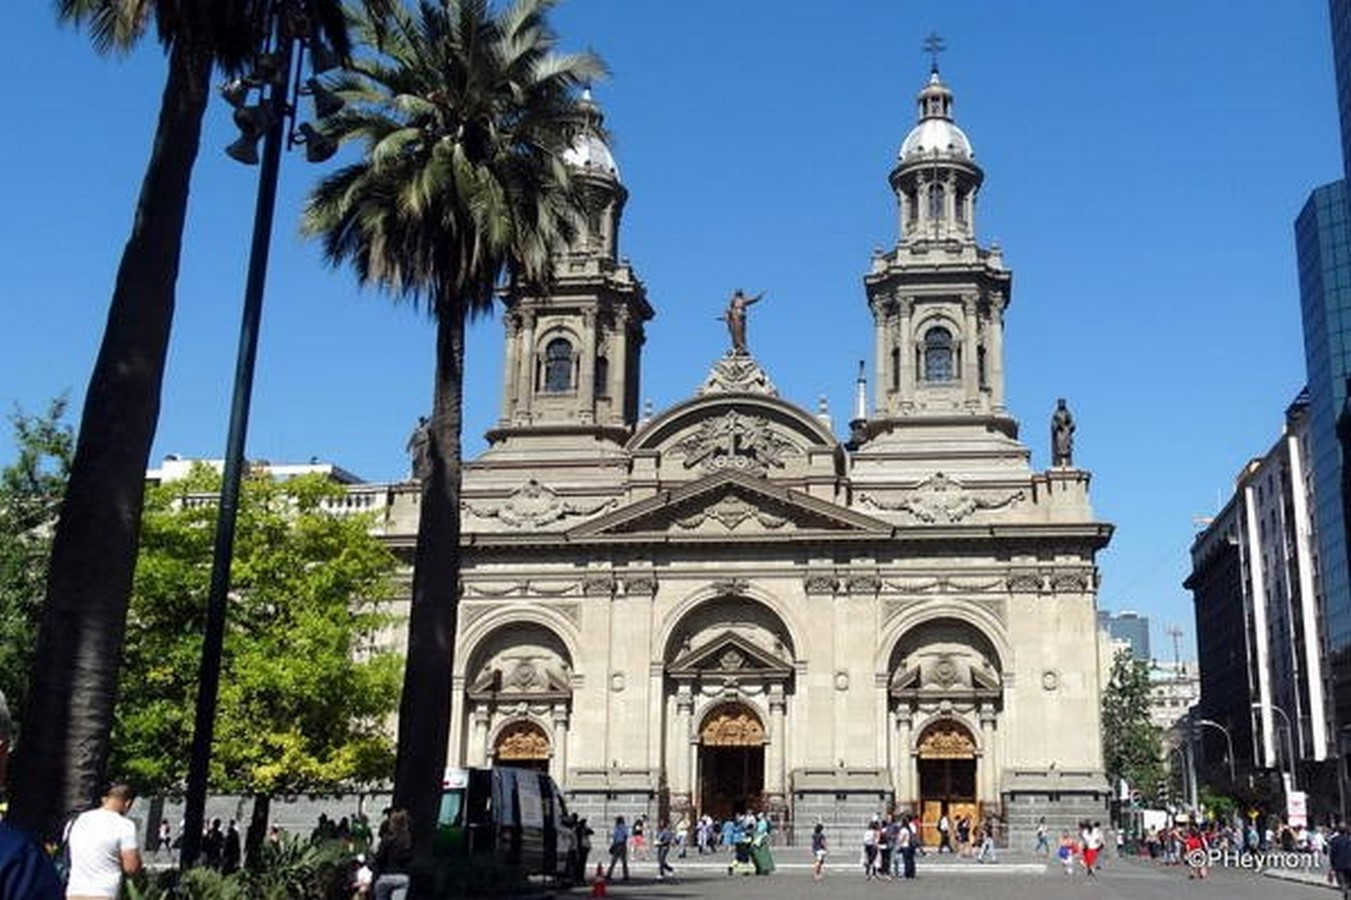 Architecture of Cities: Santiago- City's Old Colonial Core - Sheet5